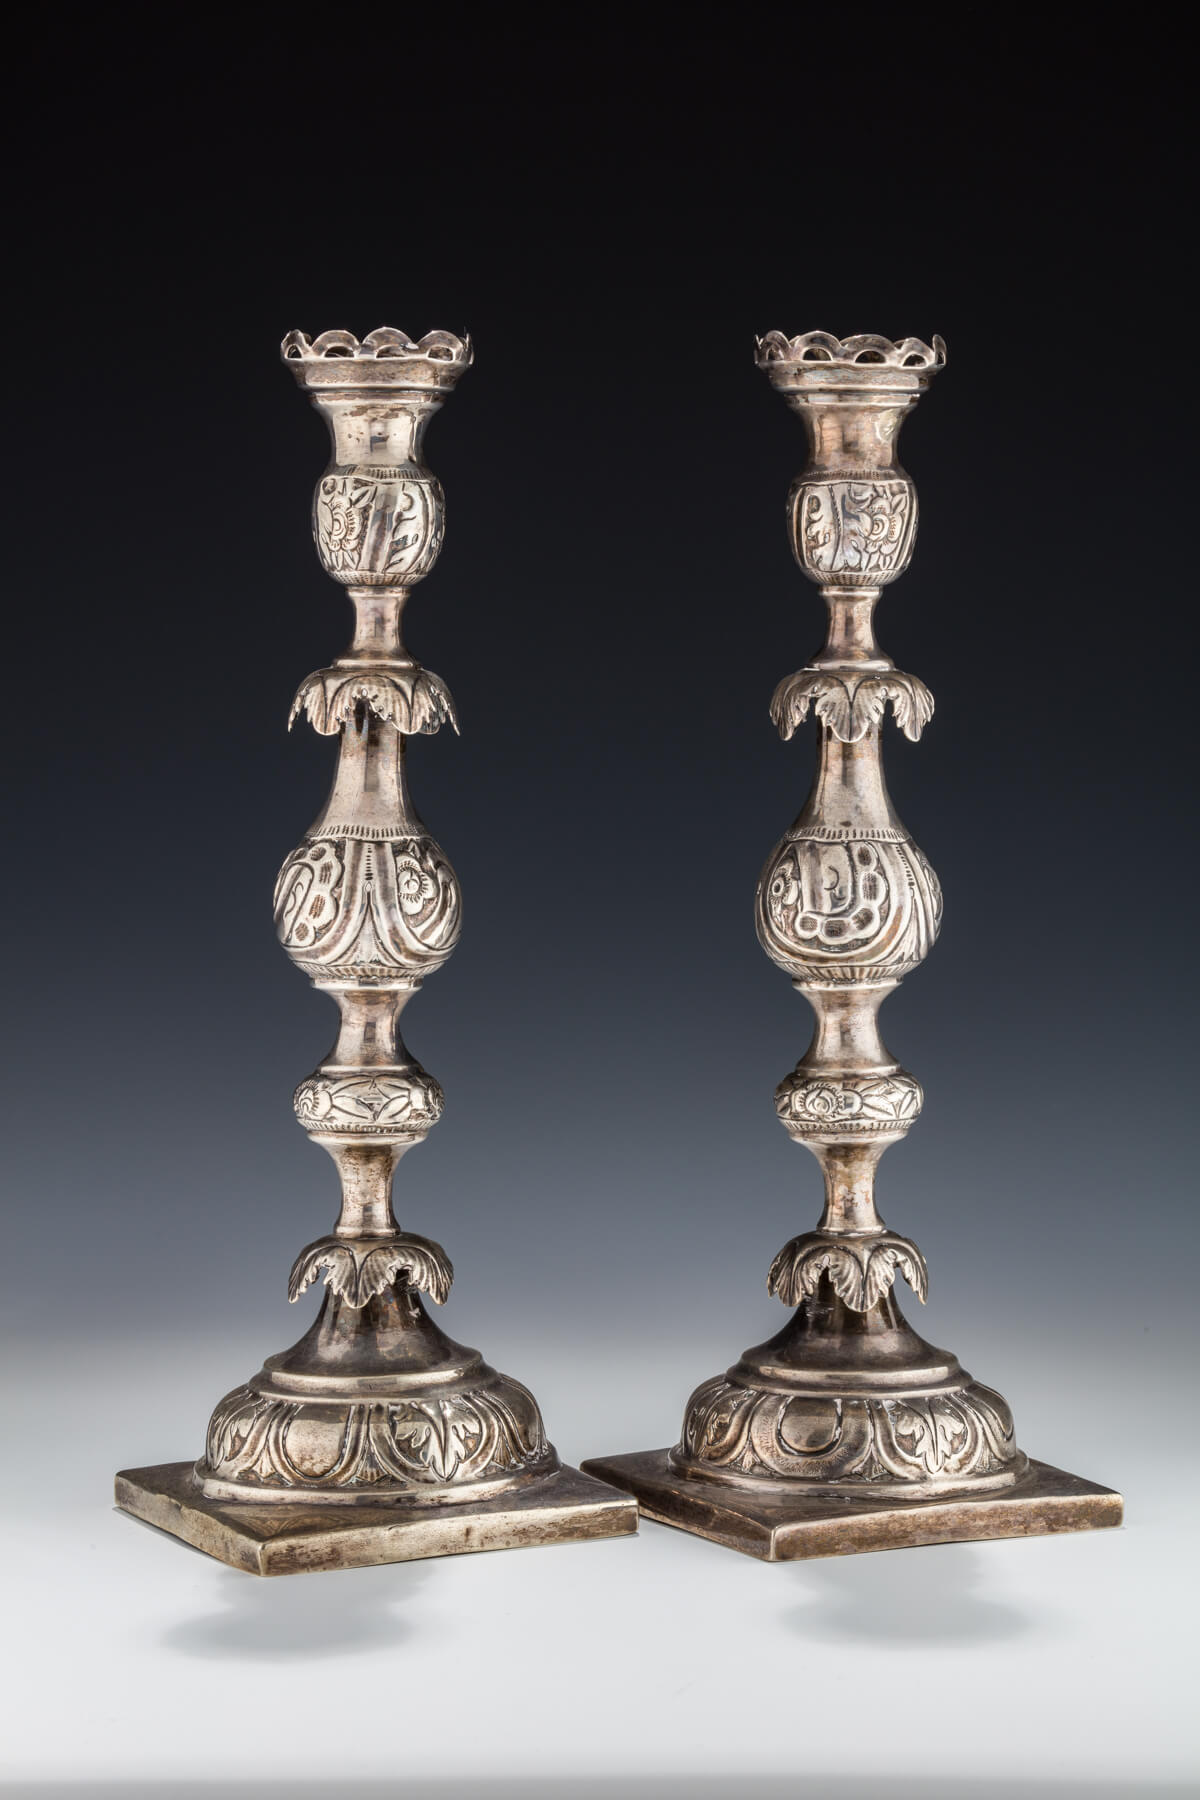 008. A Pair of Large Silver Candlesticks by Shmuel Skarlat